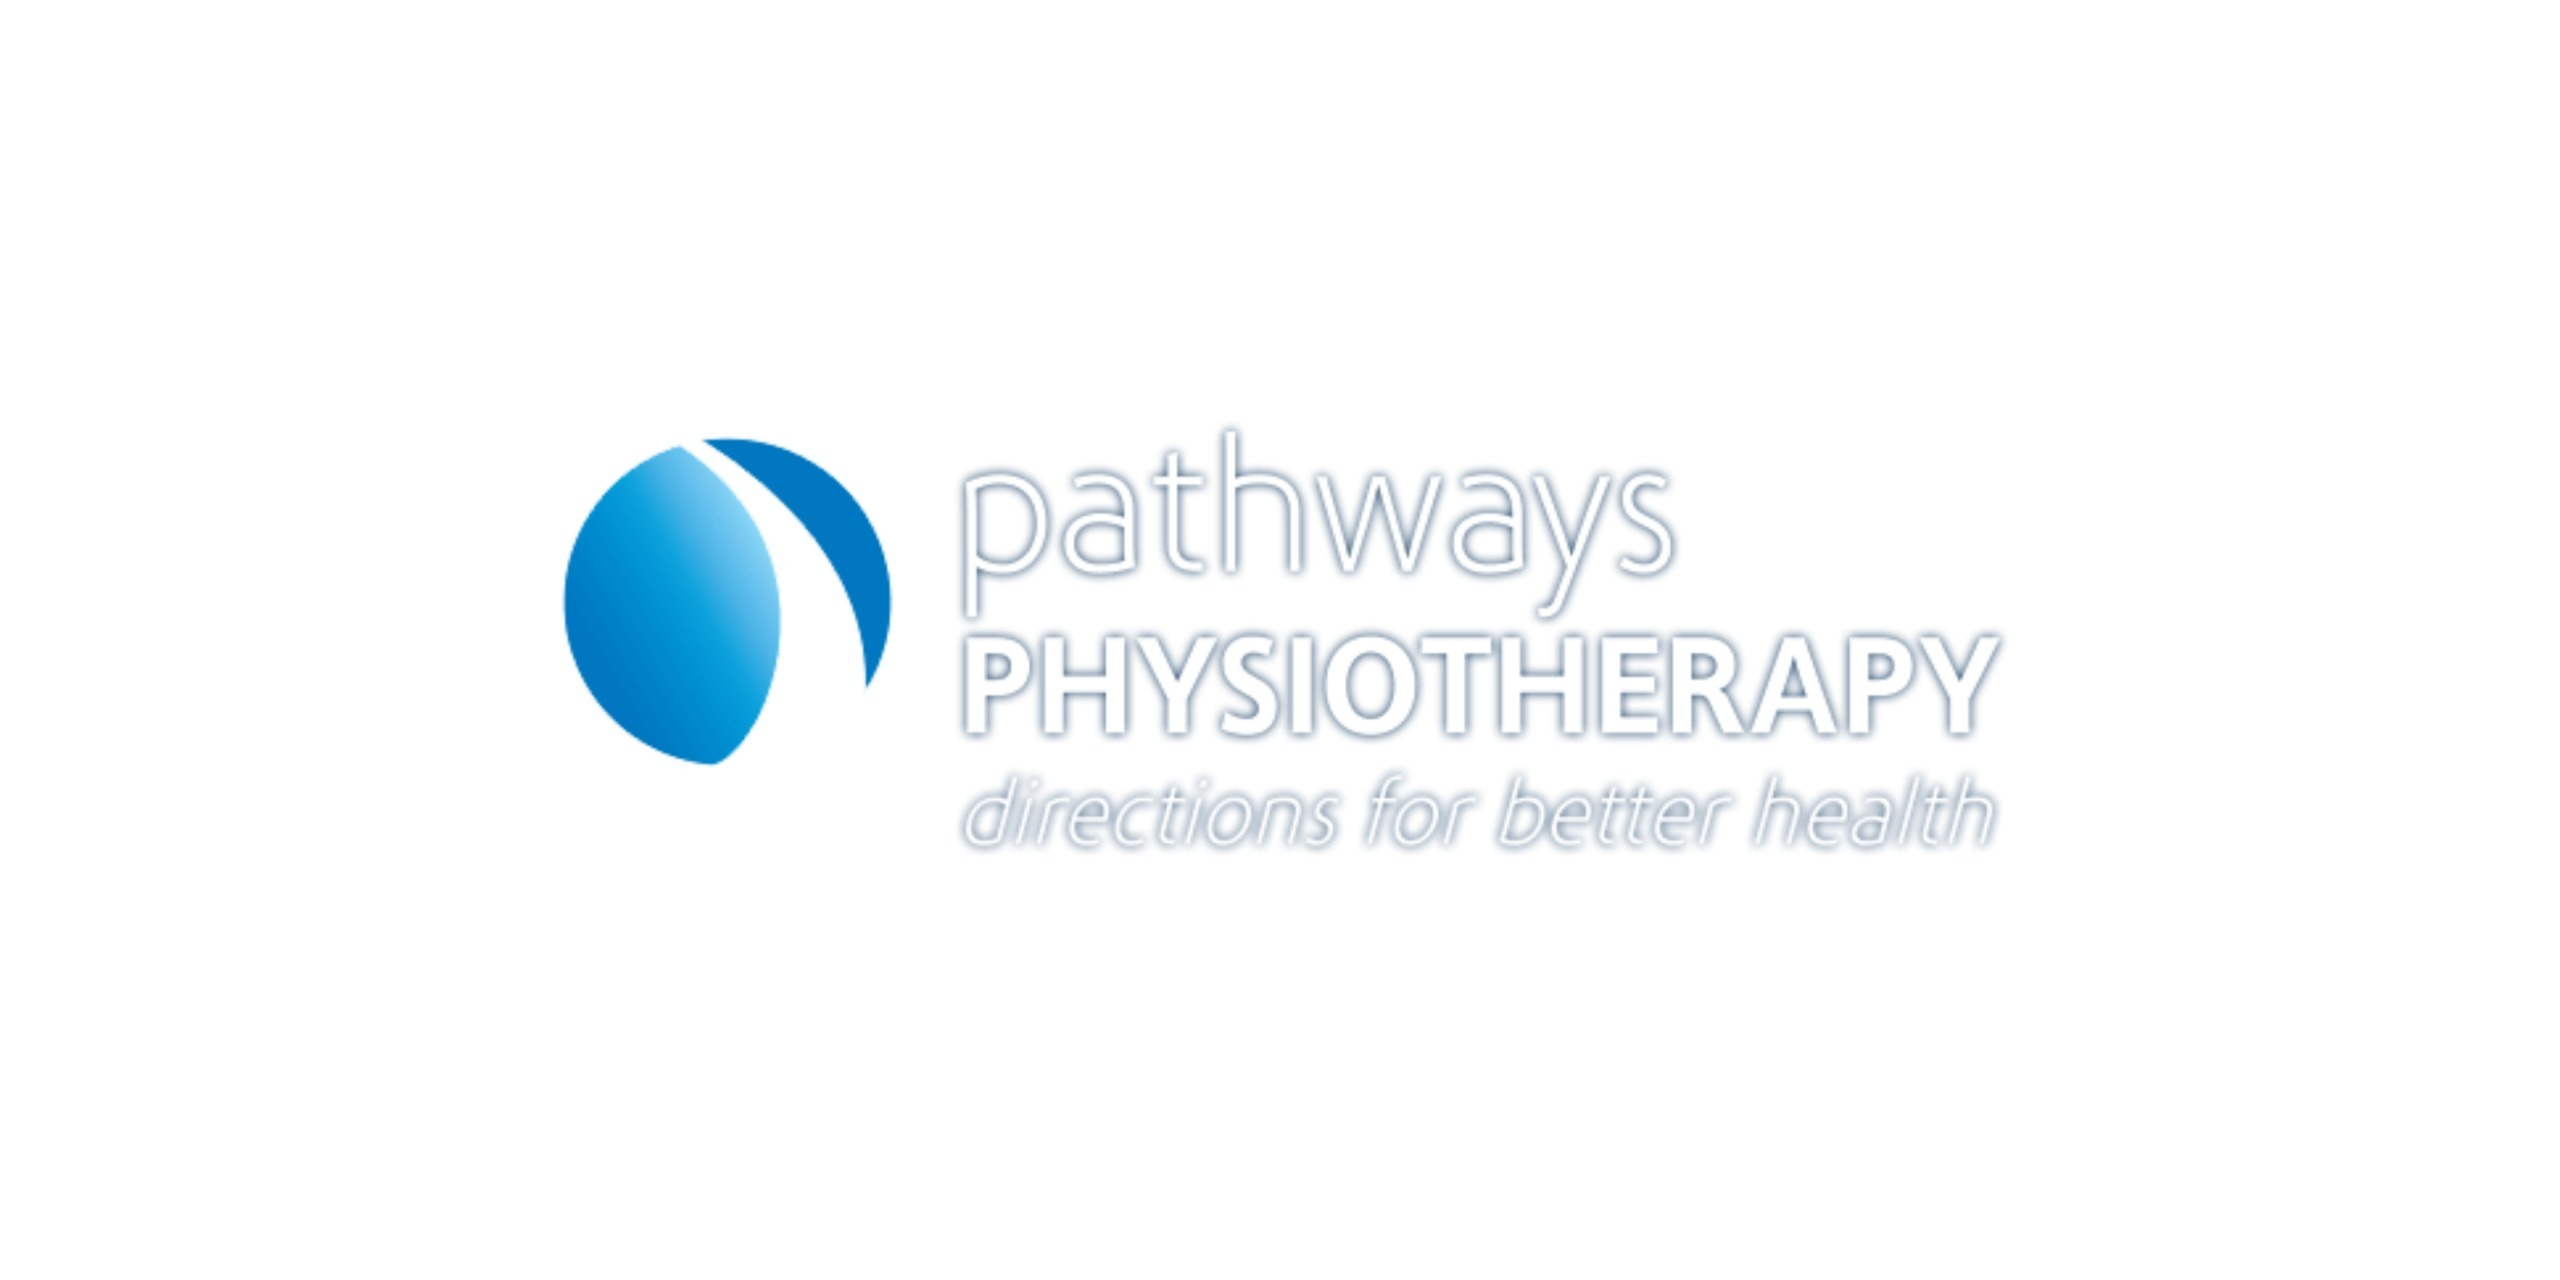 Pathways Physiotherapy (@pathwaysphysio) Cover Image